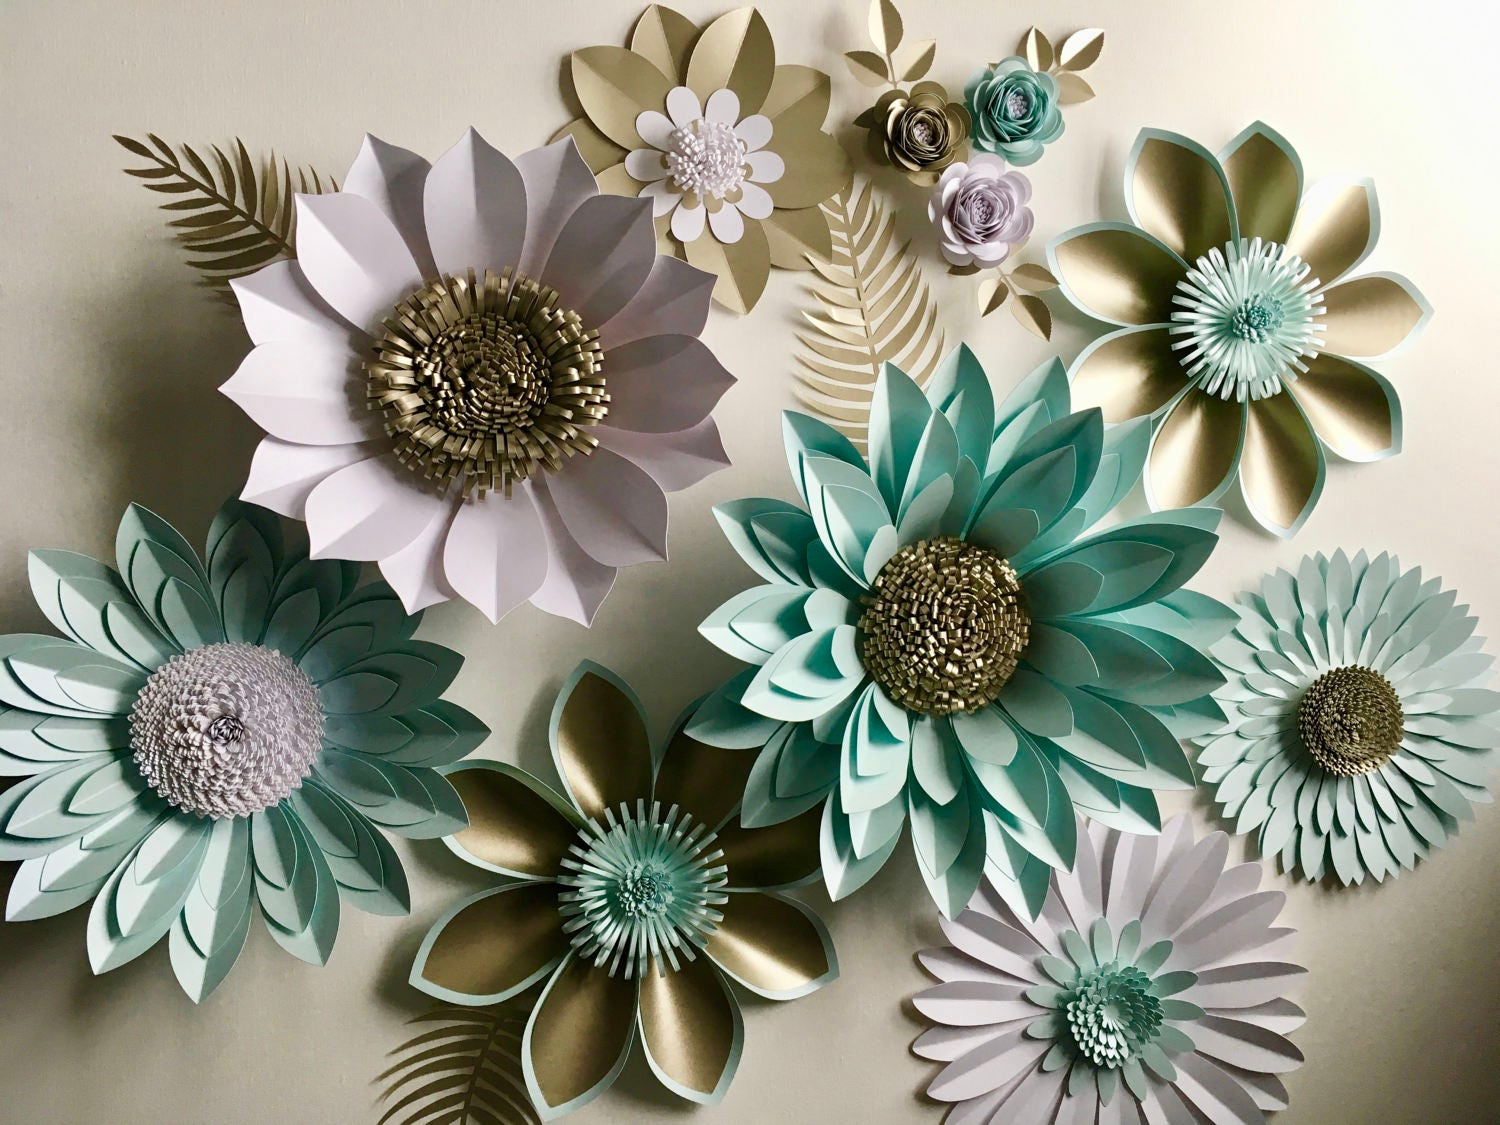 pearl and aquamarine giant paper flower backdrop wall. Black Bedroom Furniture Sets. Home Design Ideas